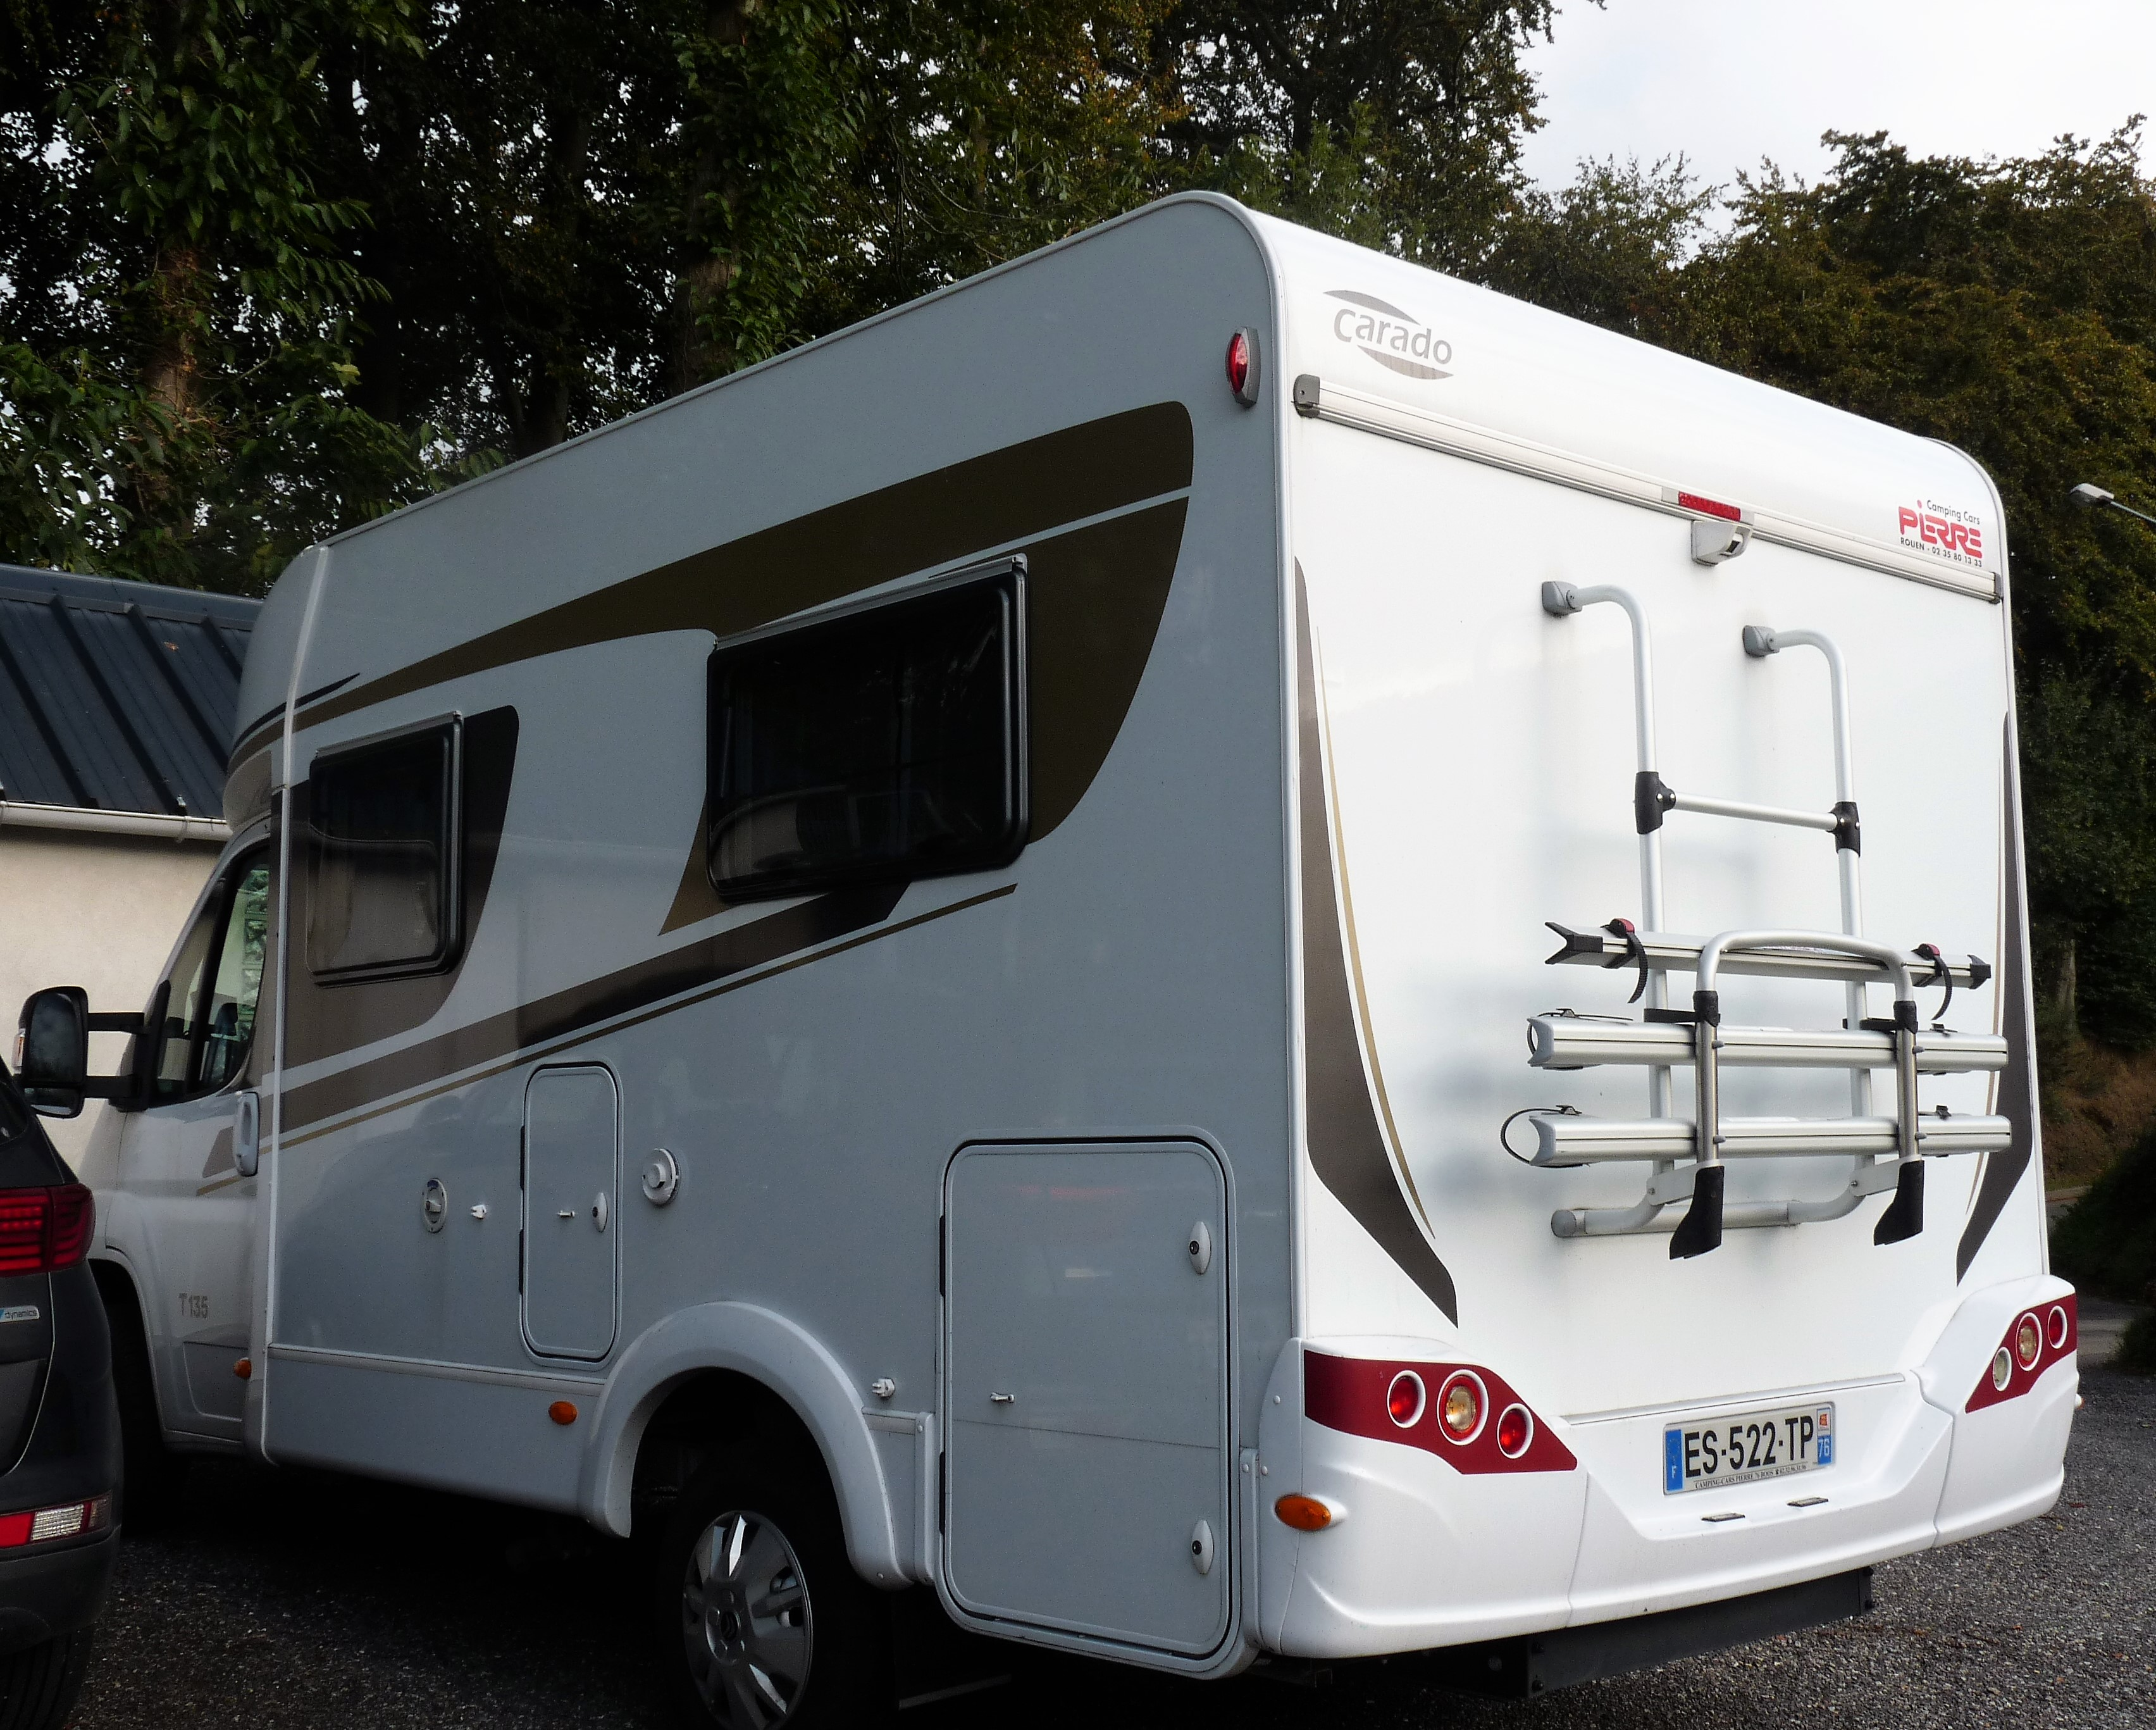 Le bon coin 12 camping car occasion particulier